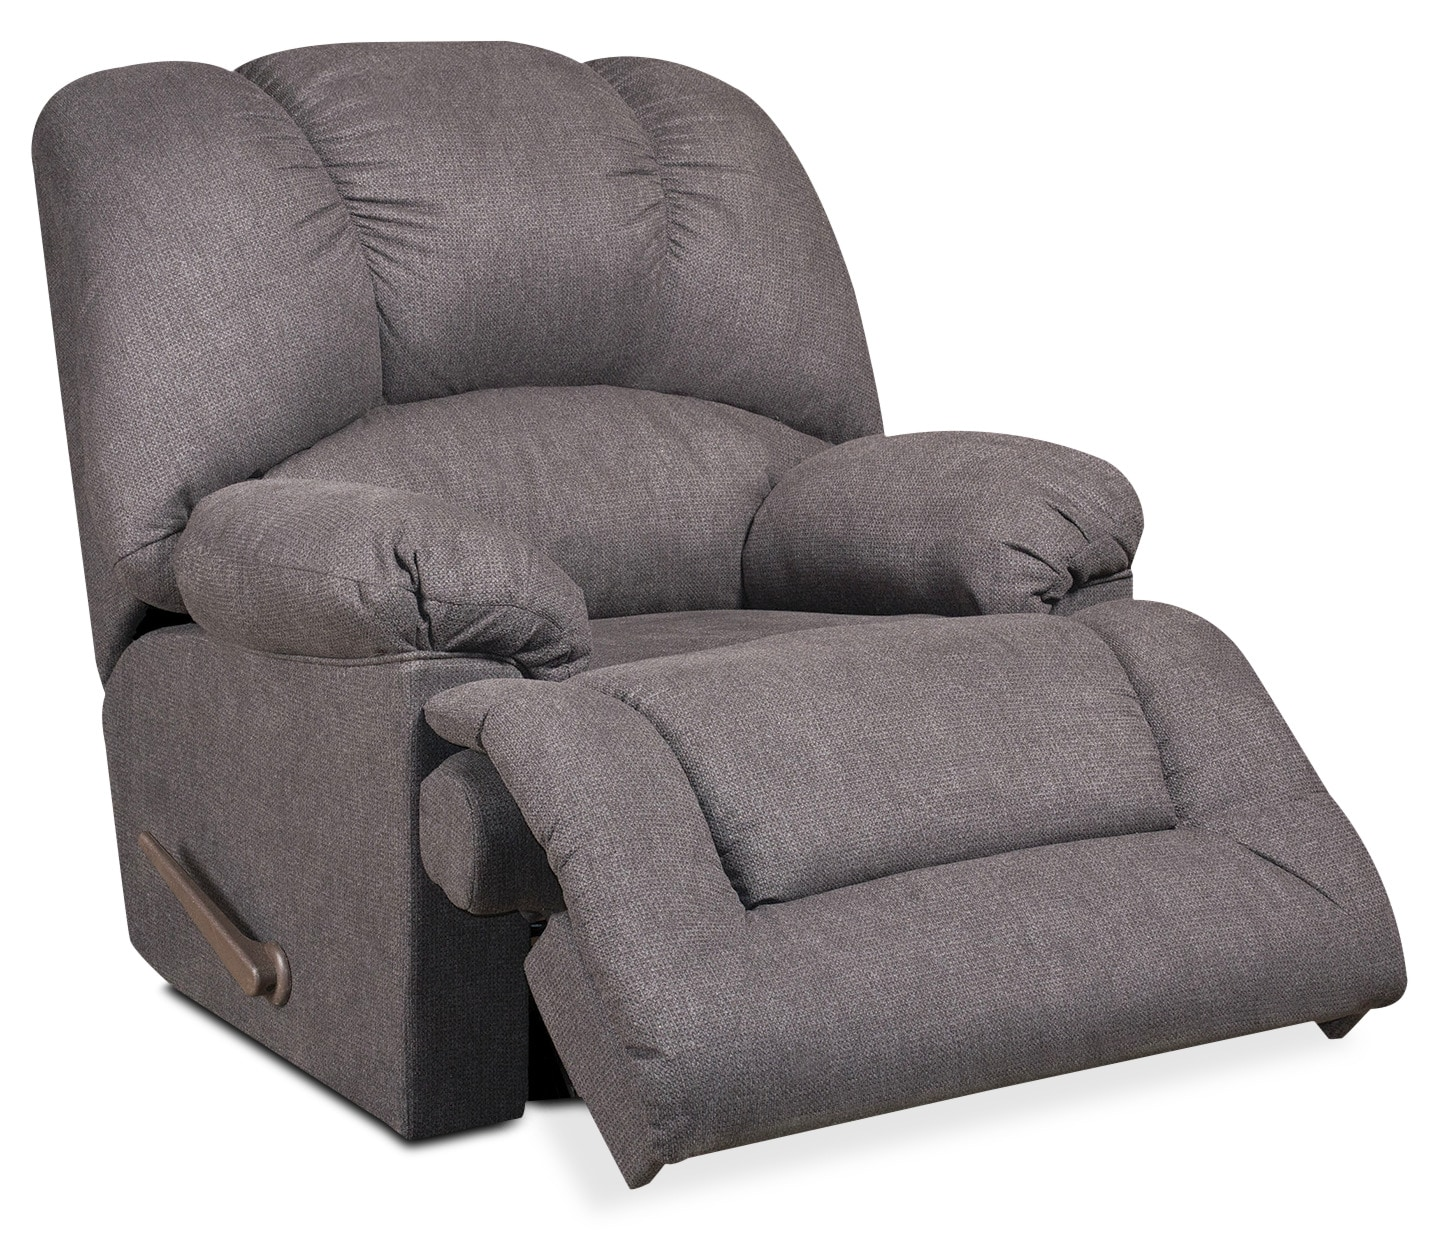 Wynwood Rocker Recliner - Smoke